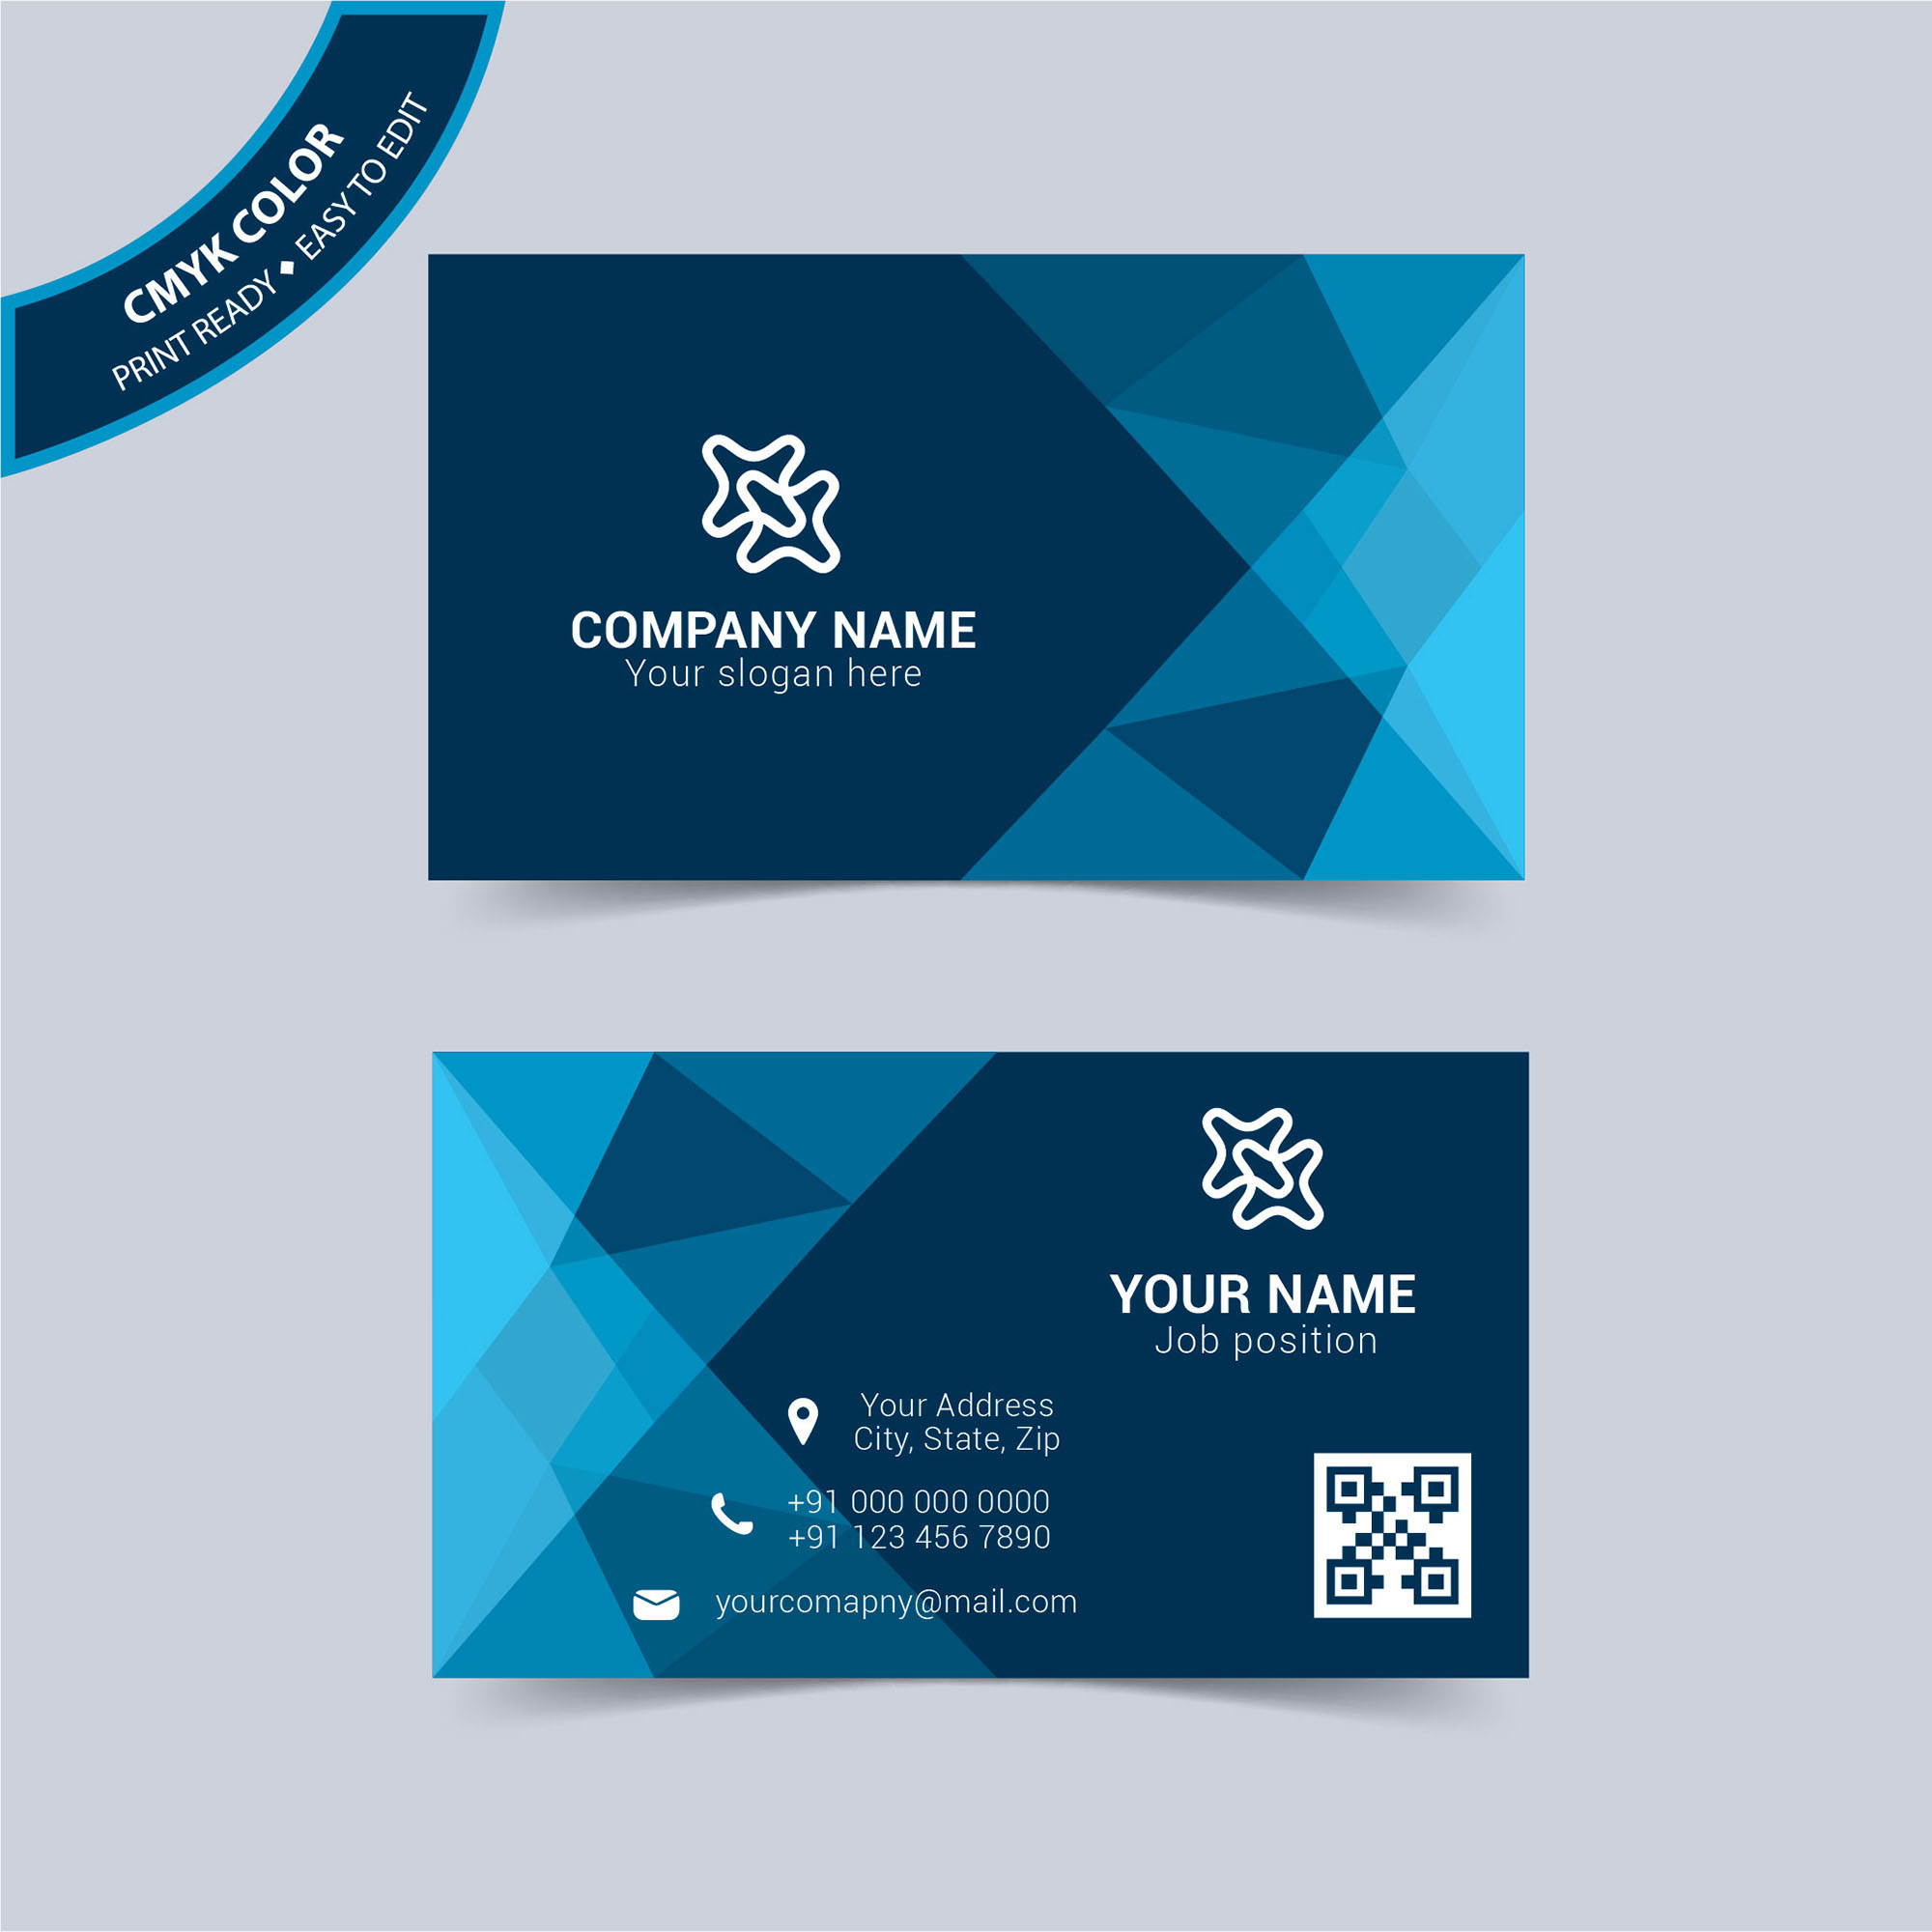 Creative corporate business card design free download wisxi business card business cards business card design business card template design templates reheart Choice Image